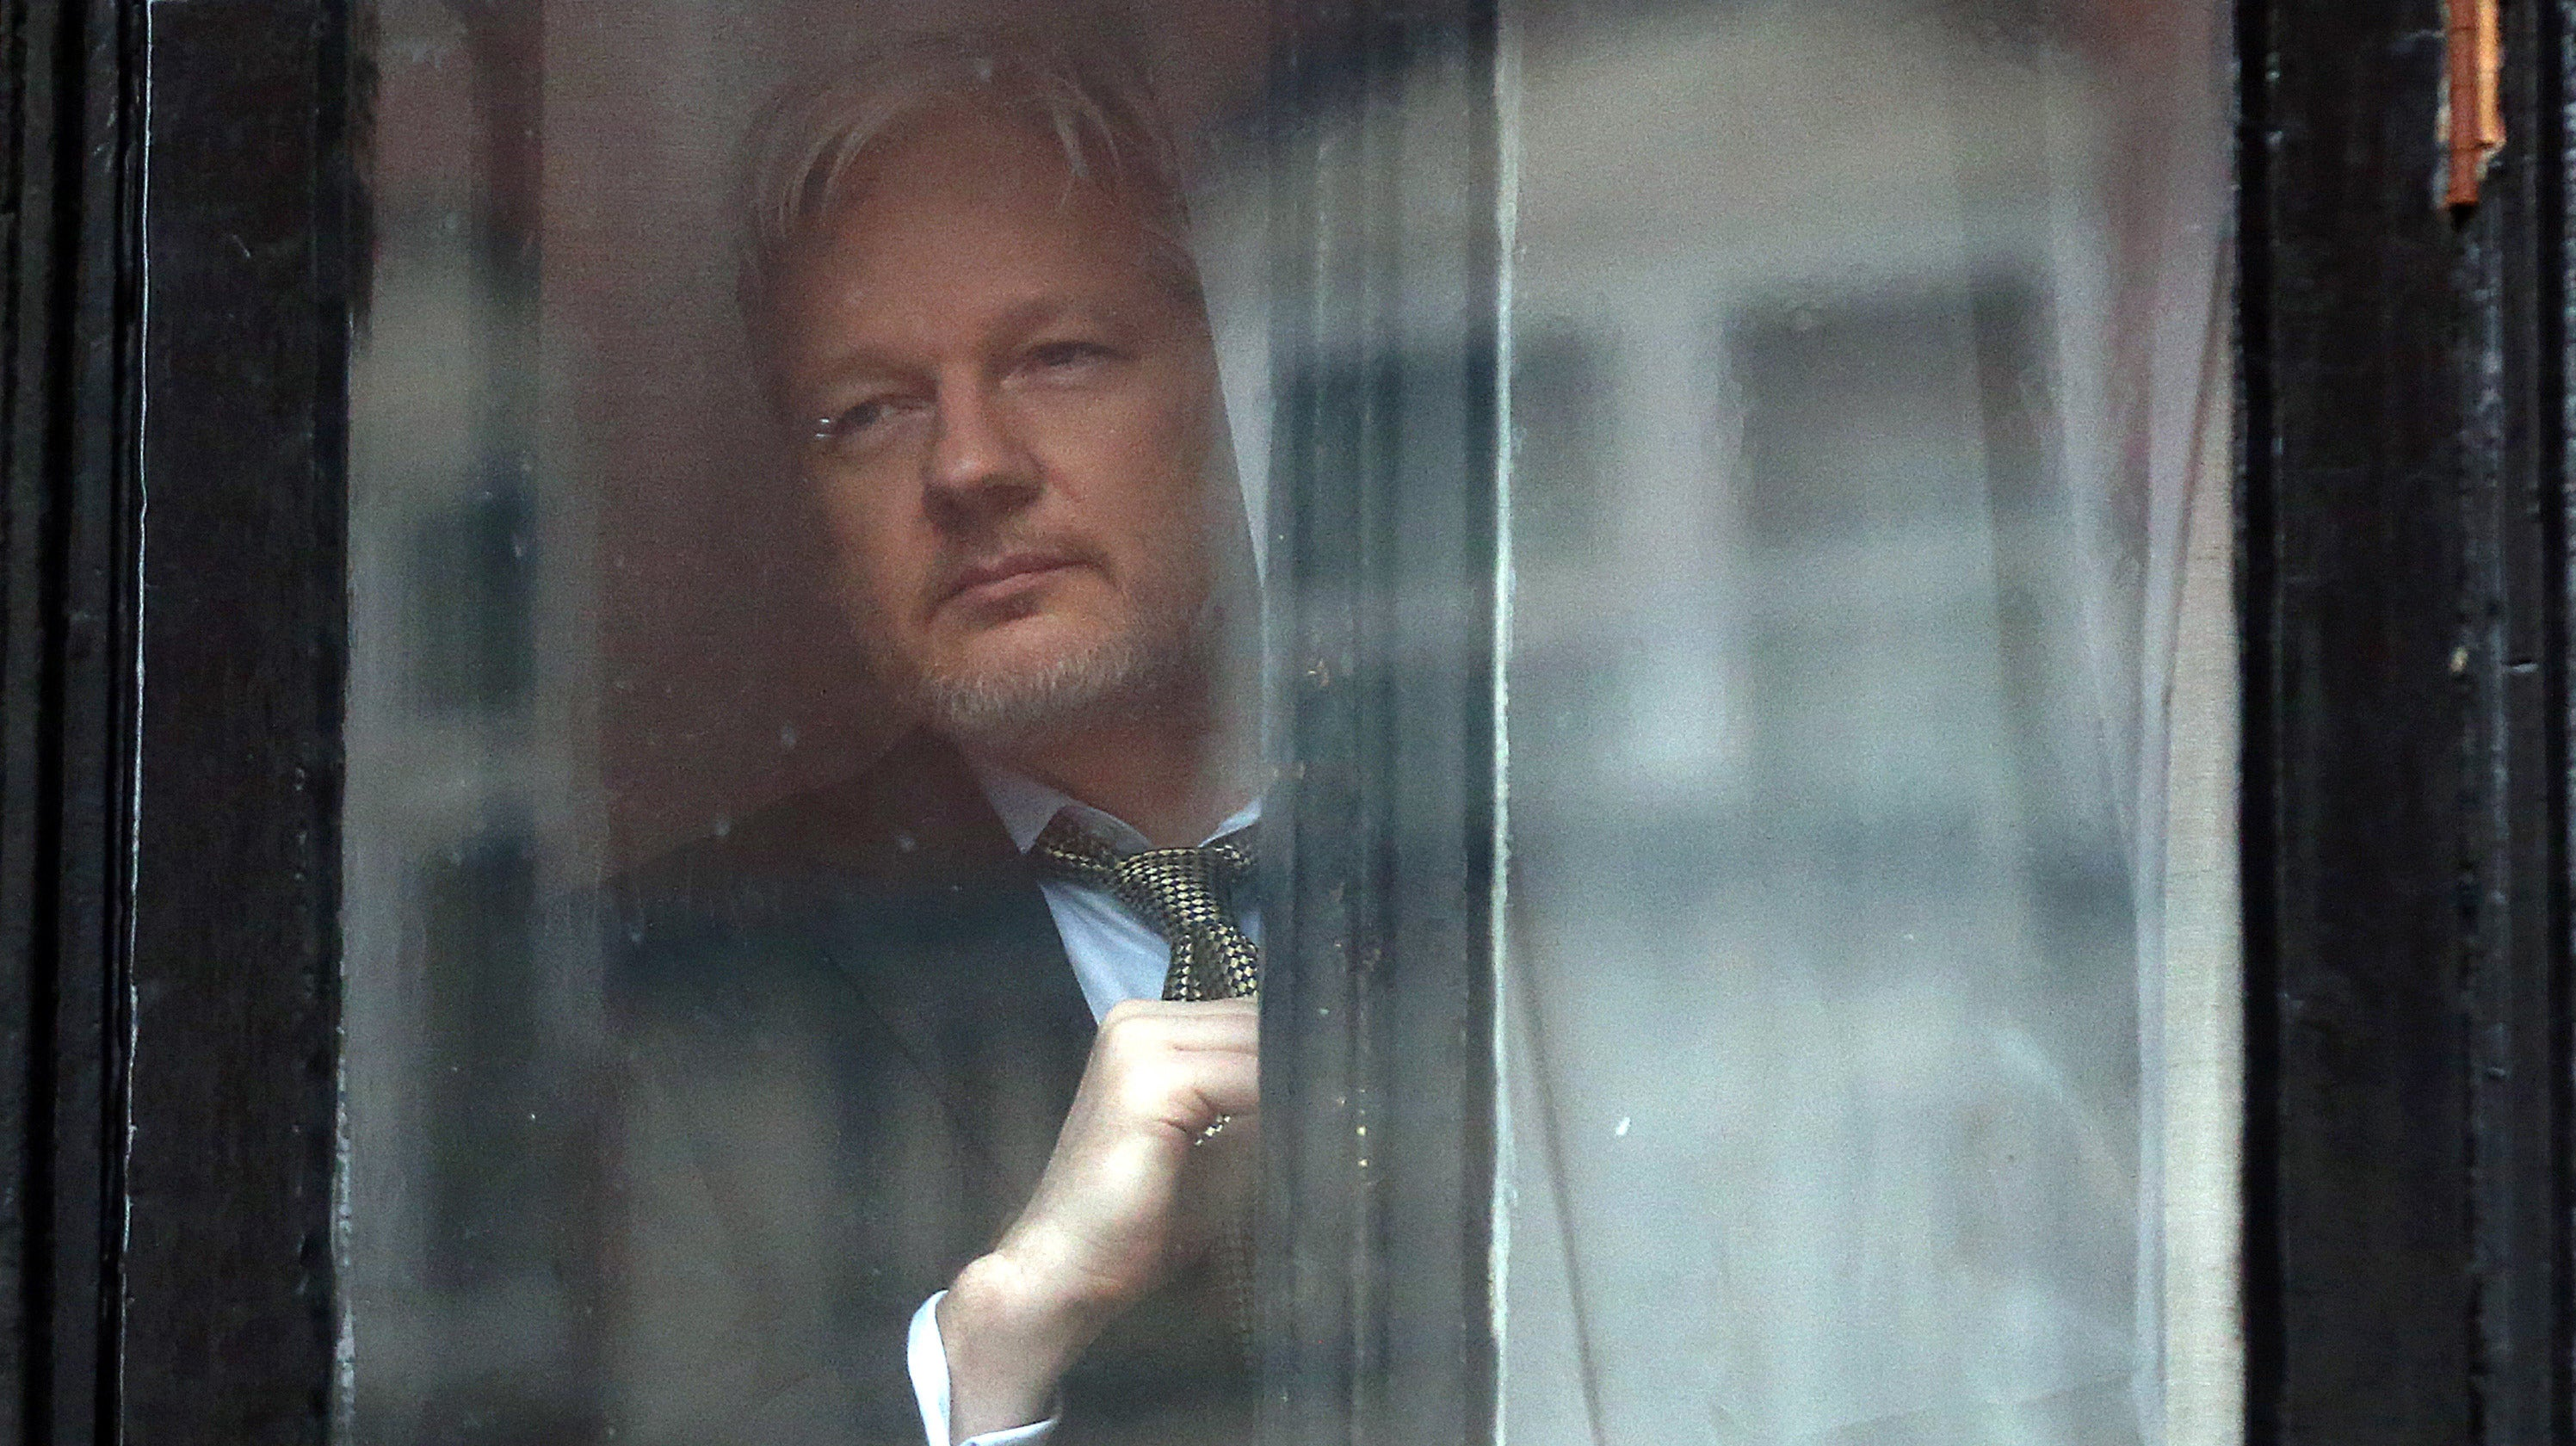 Leaked WikiLeaks Email: Non-Murderer Julian Assange Doesn't Stink Or Live Under The Stairs